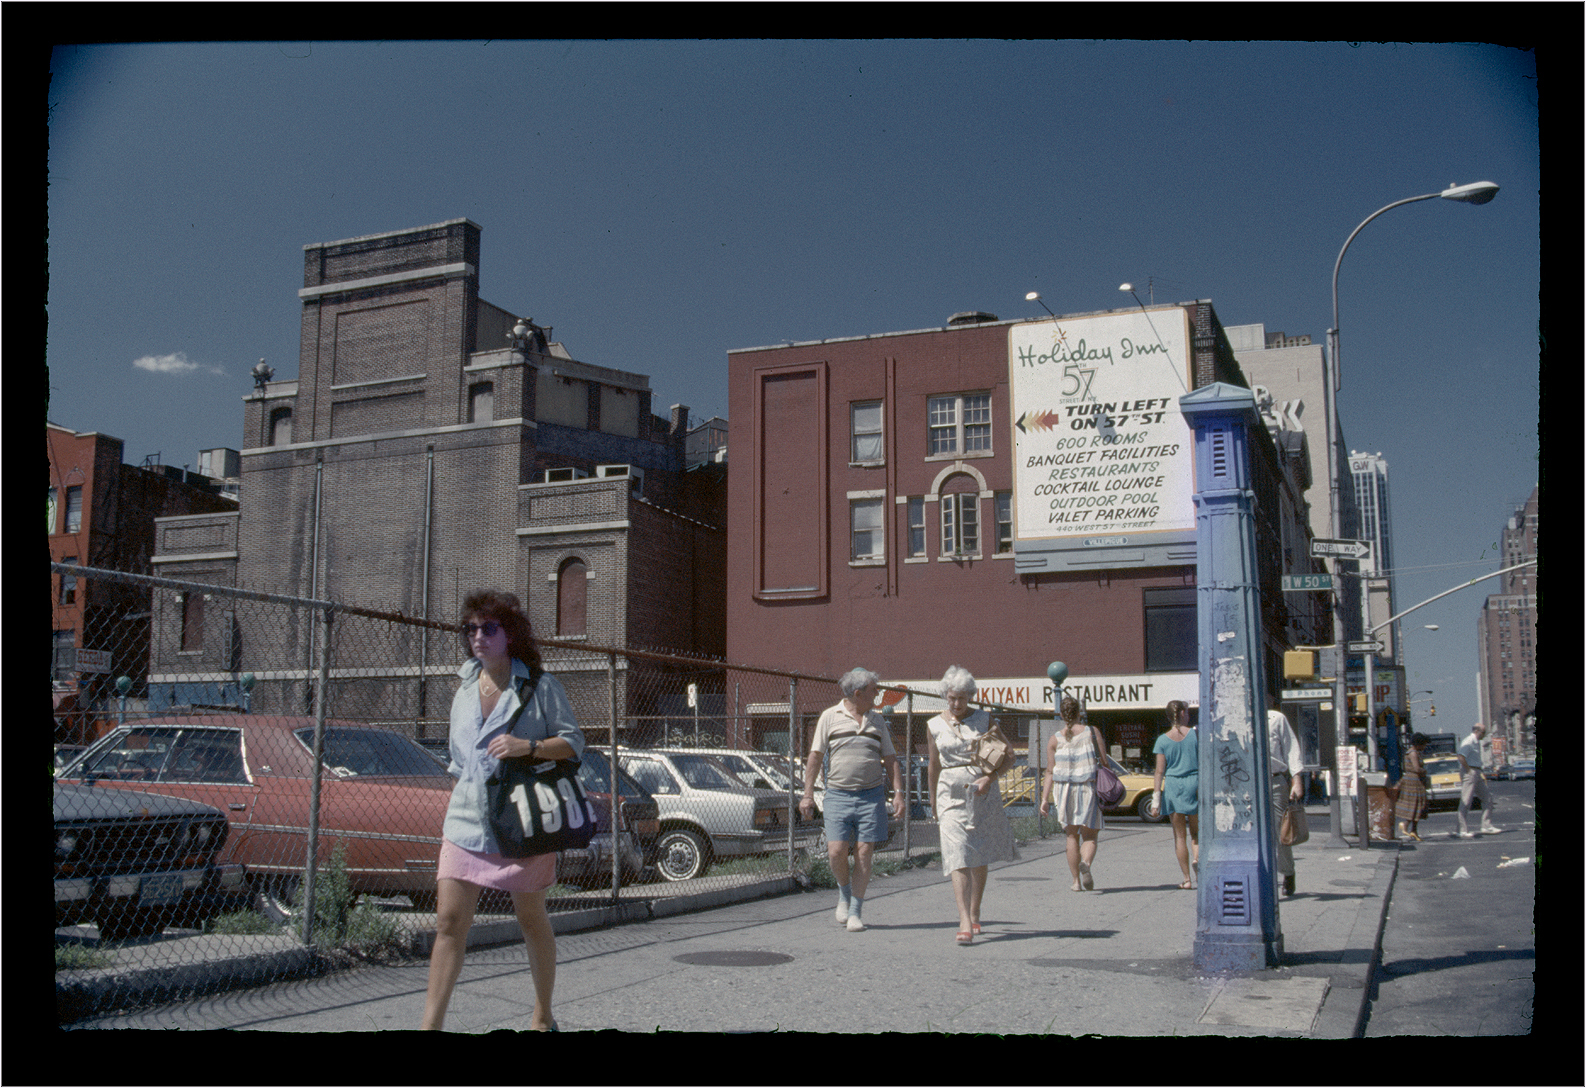 The Site Of The Old Madison Square Garden 1985